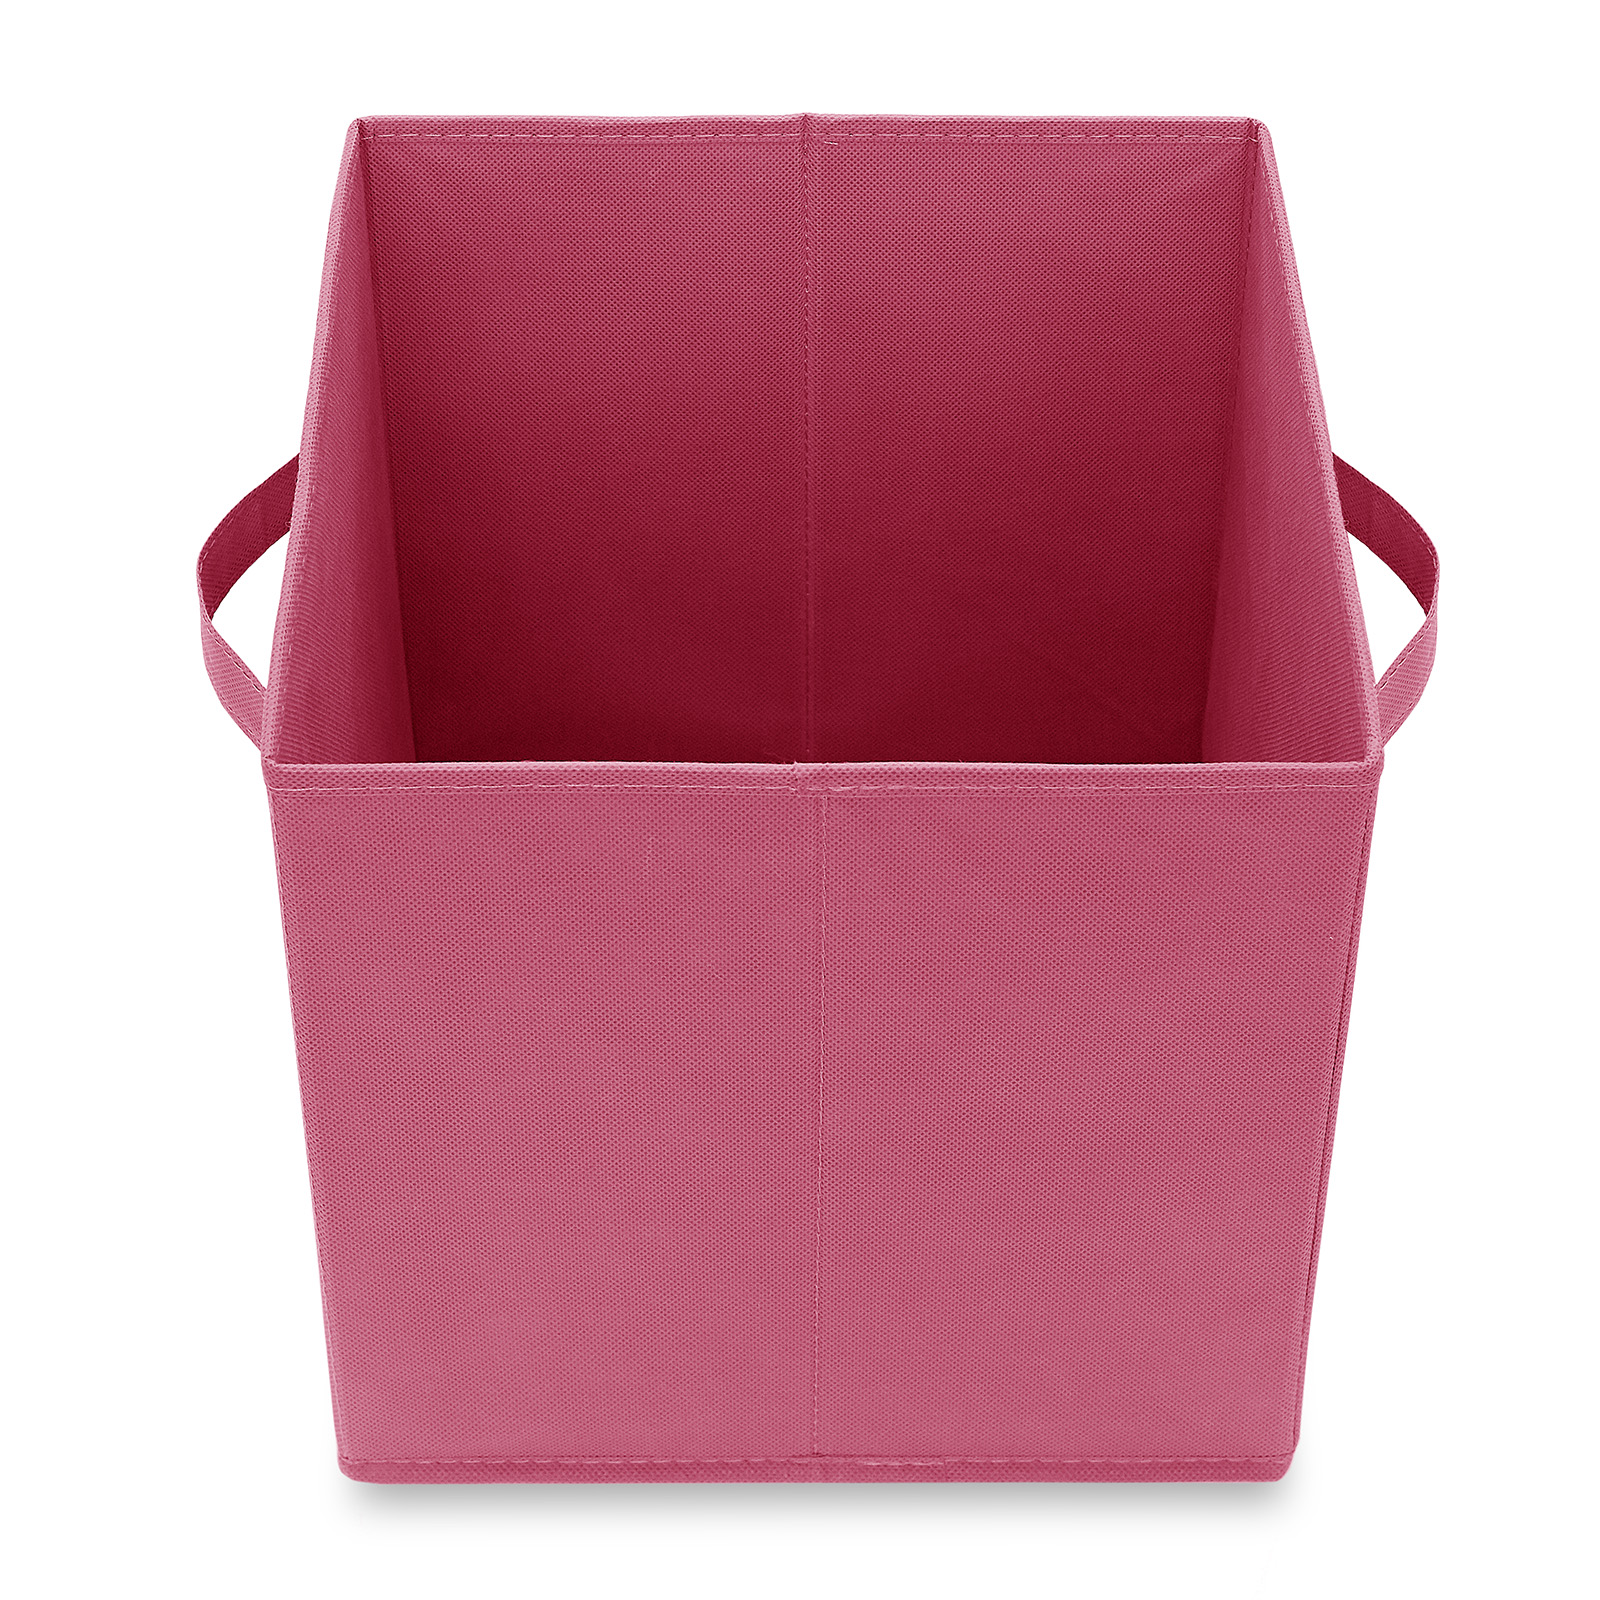 6-Collapsible-Foldable-Cloth-Fabric-Cubby-Cube-Storage-Bins-Baskets-for-Shelves thumbnail 30